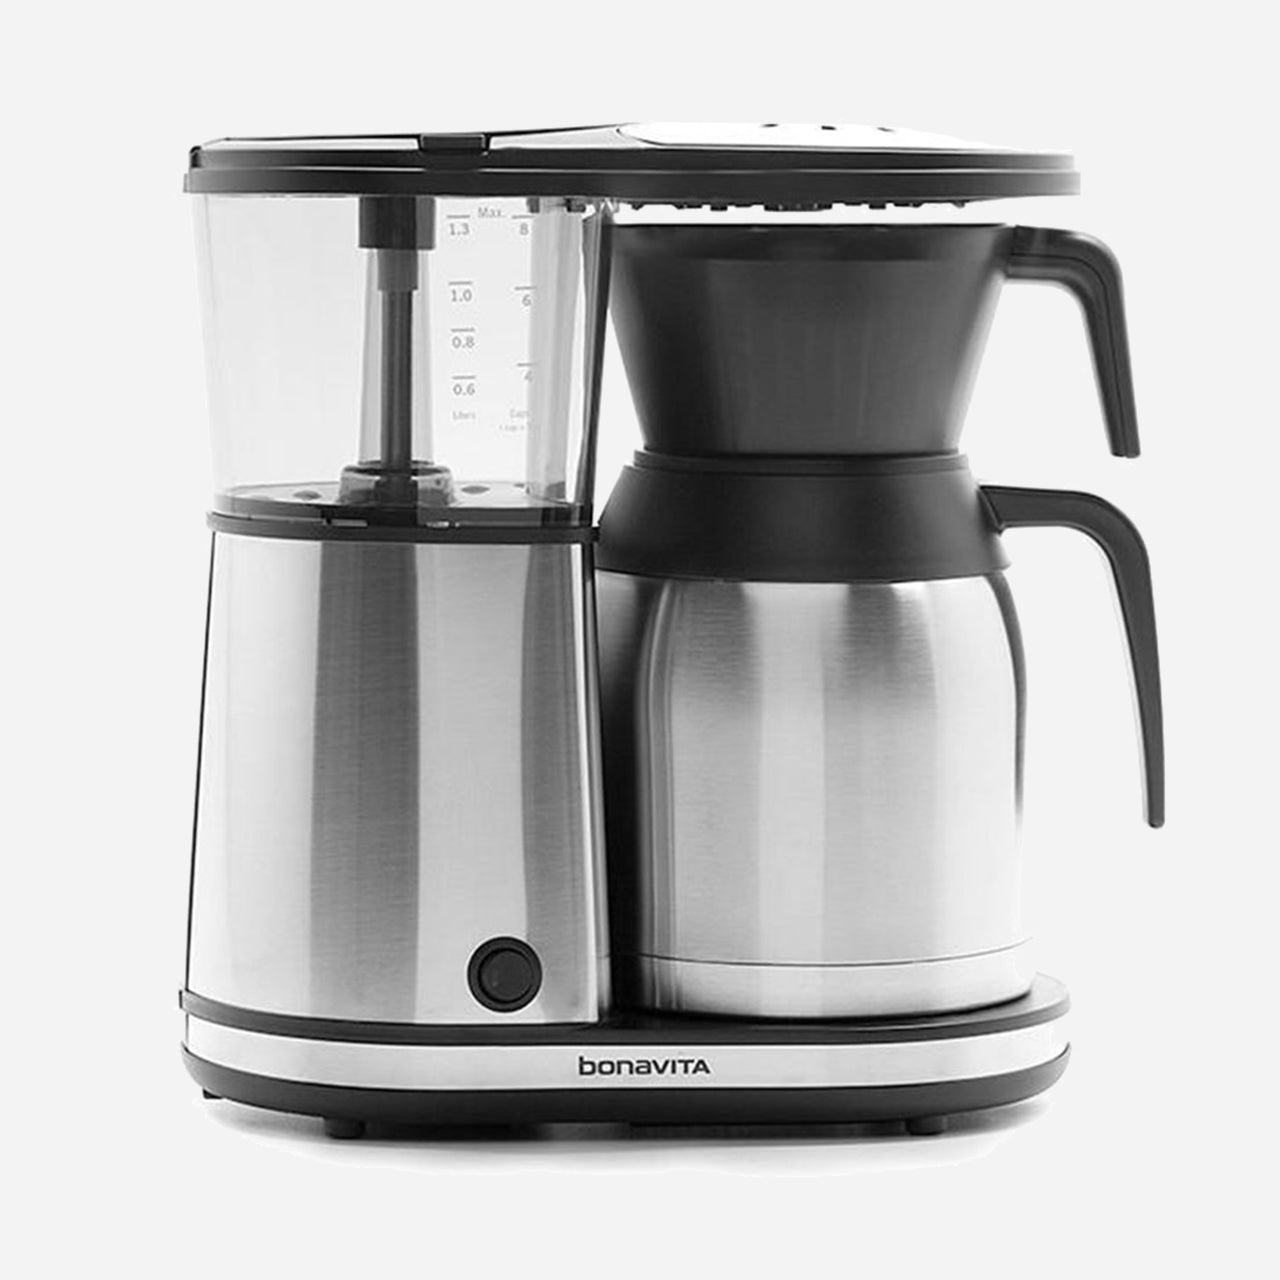 Bonavita 8 Cup Coffee Brewer BV1900TS